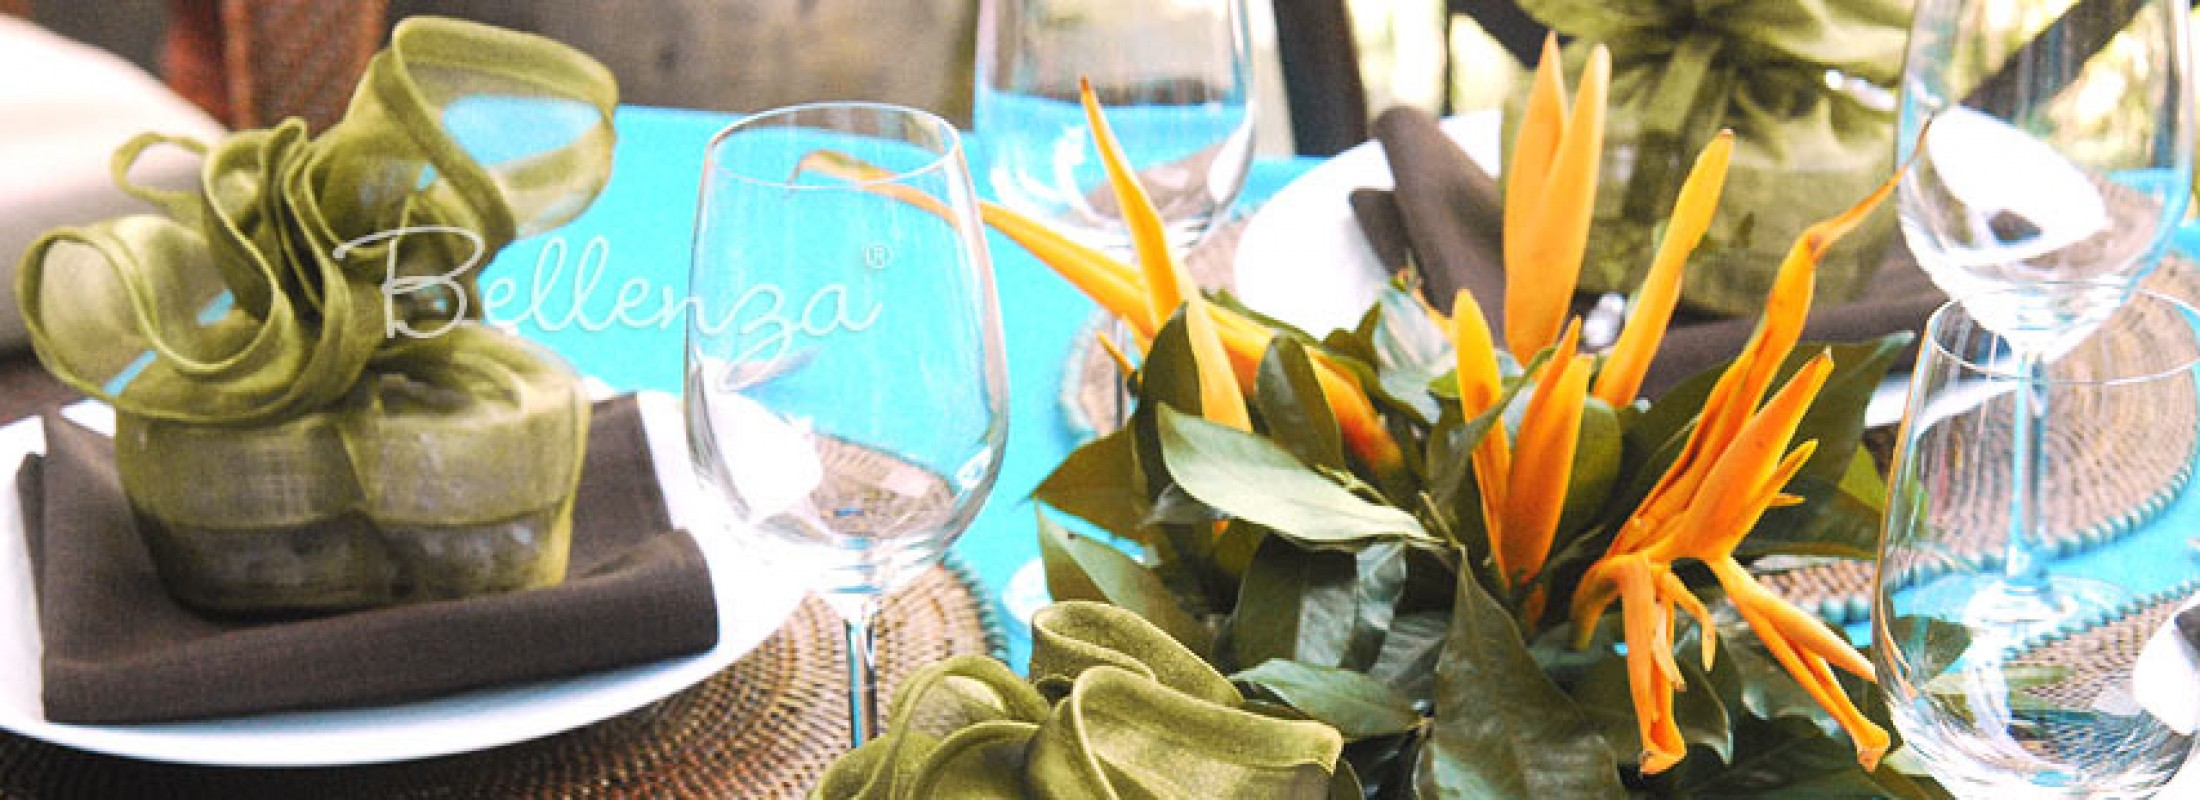 Summer table styling inspiration